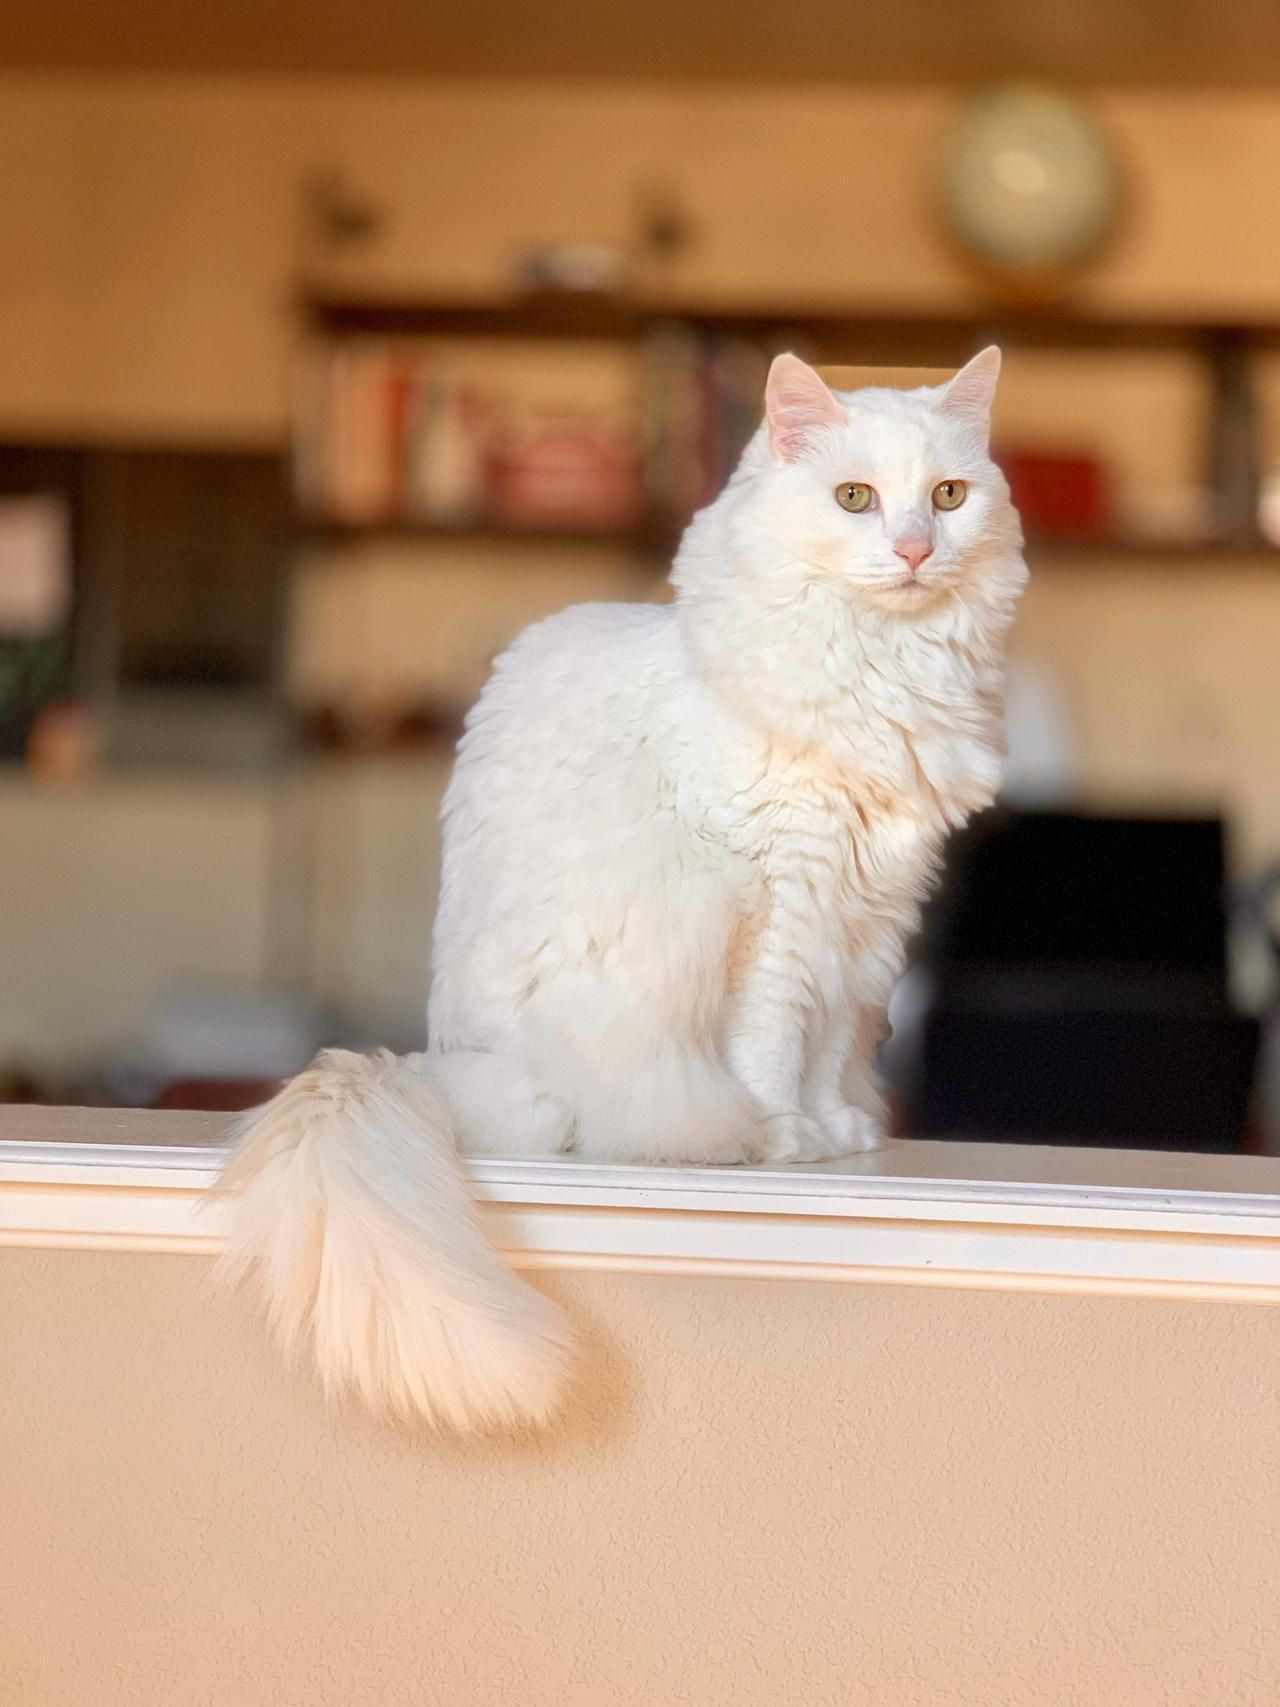 Cute Flat Faced Cat Cat Pictures For Kids Beautiful Cats Pictures Cats